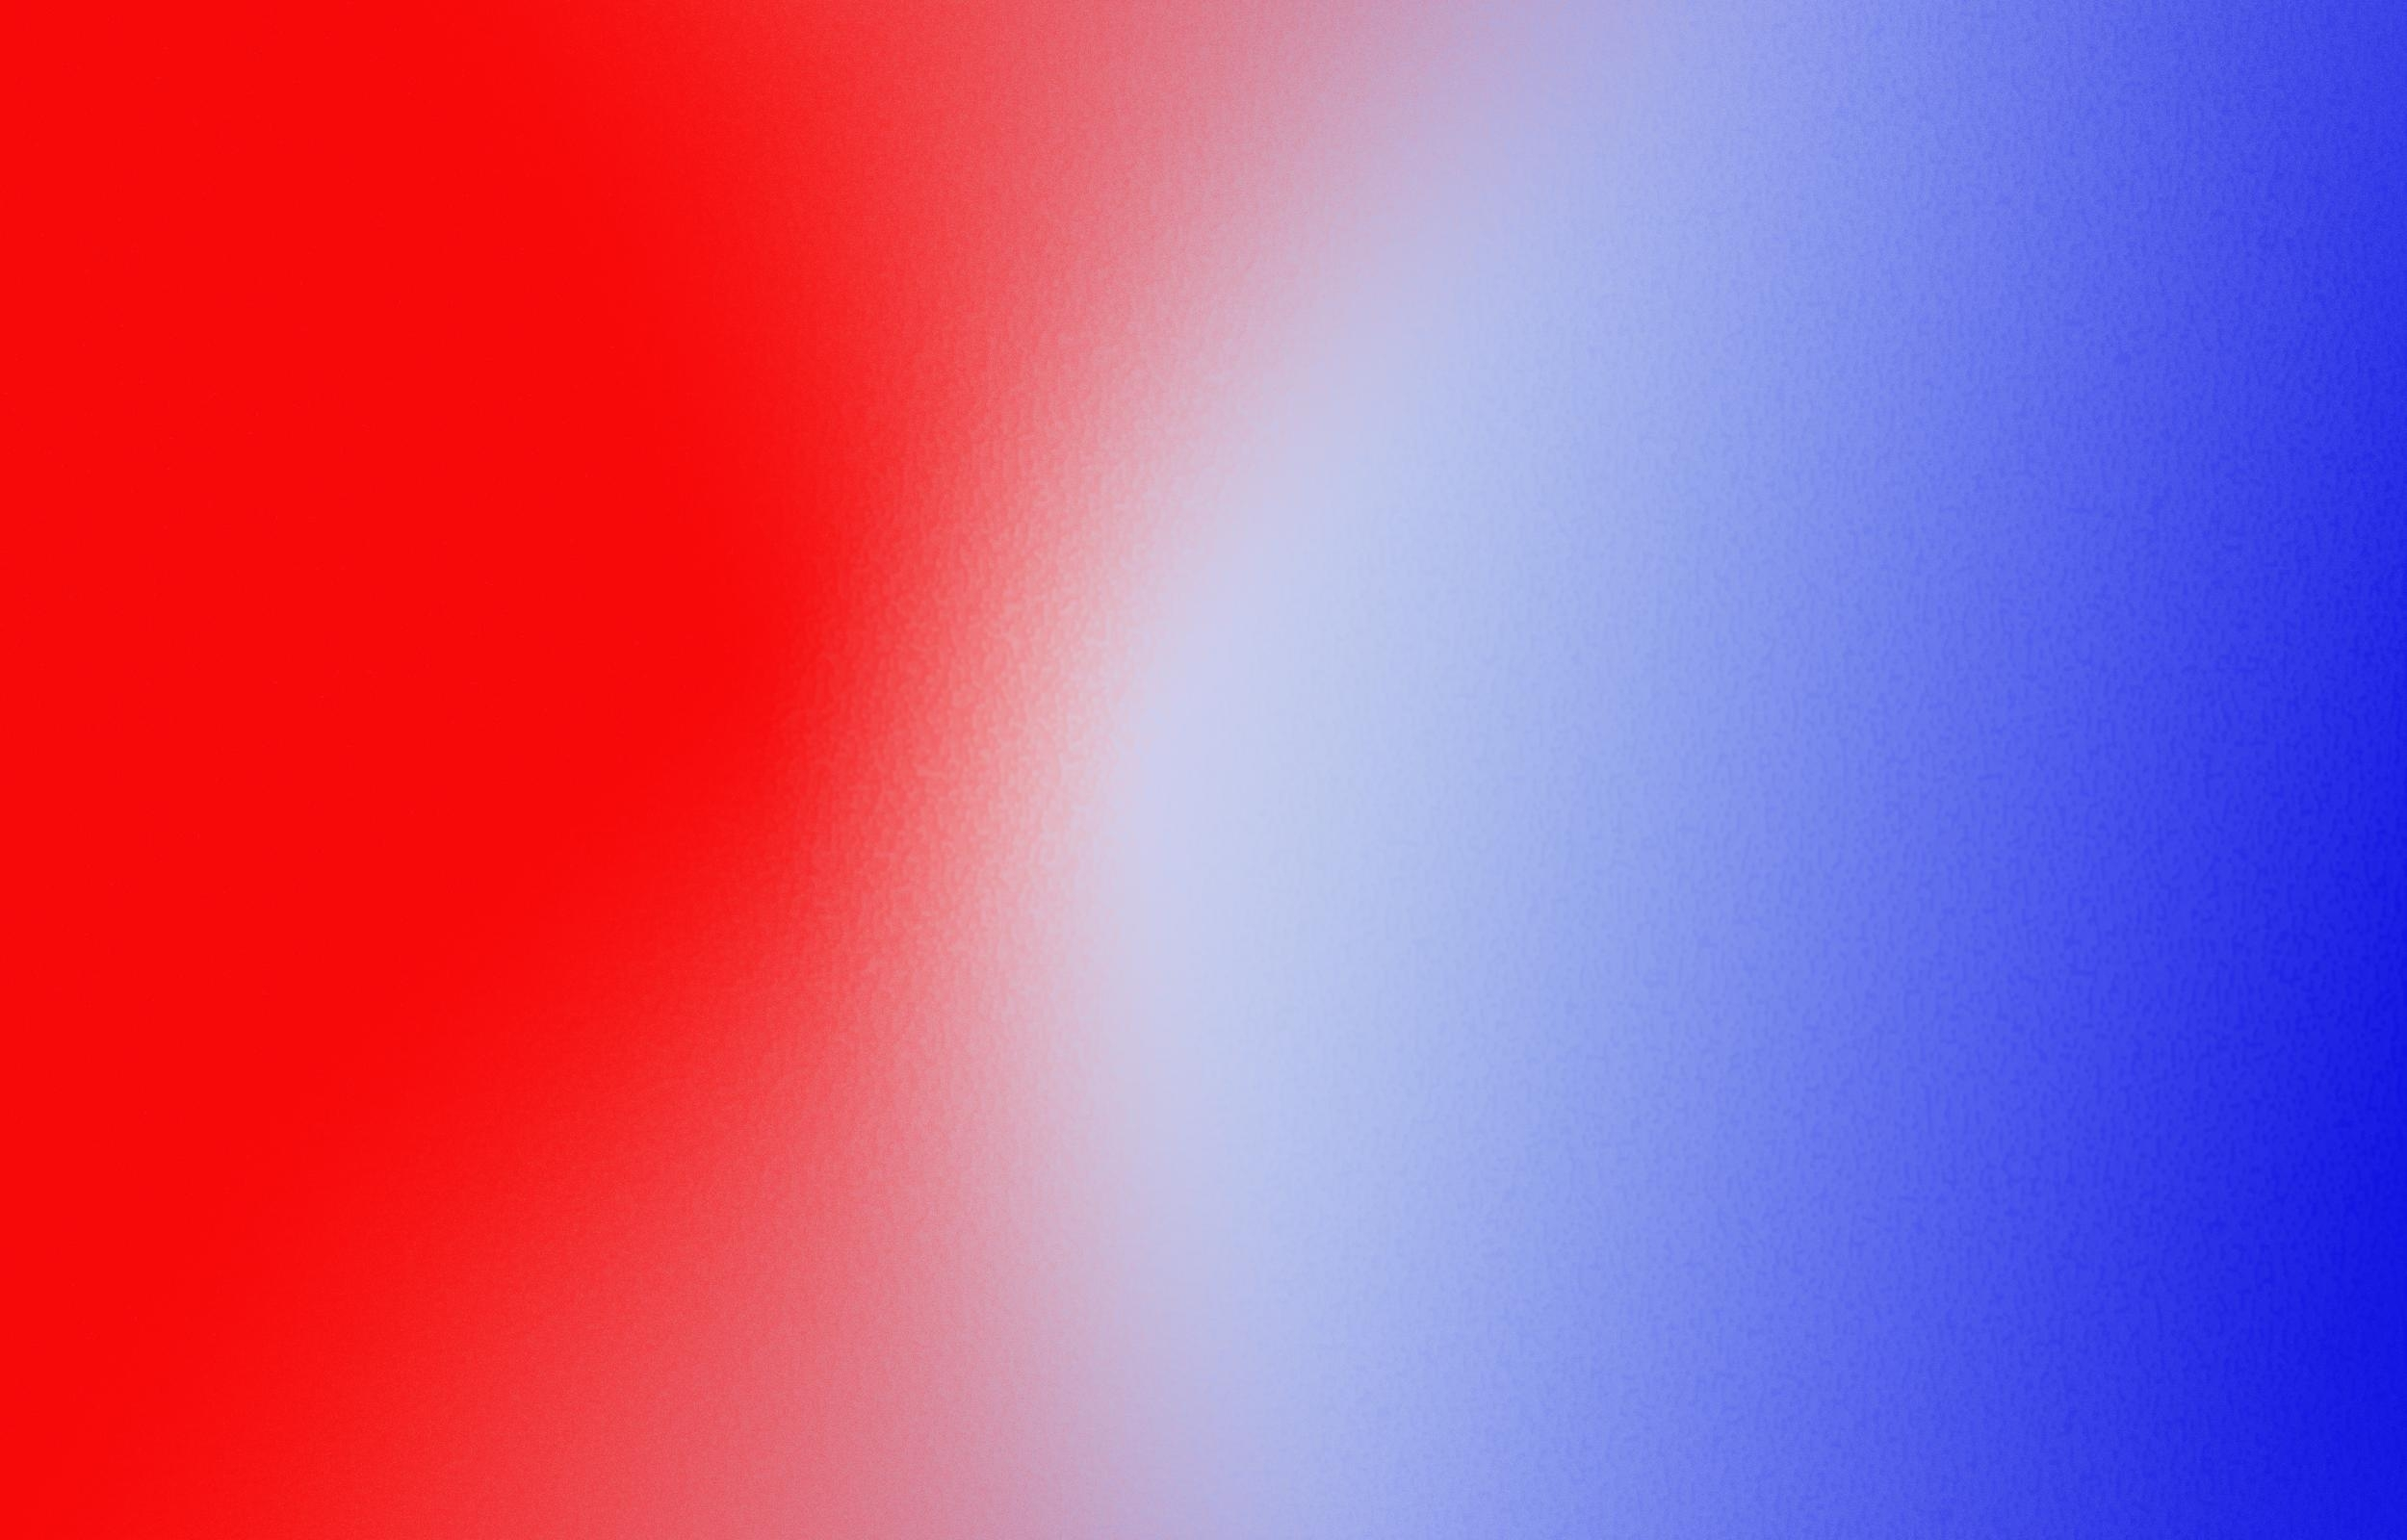 red white and blue backgrounds - wallpaper cave